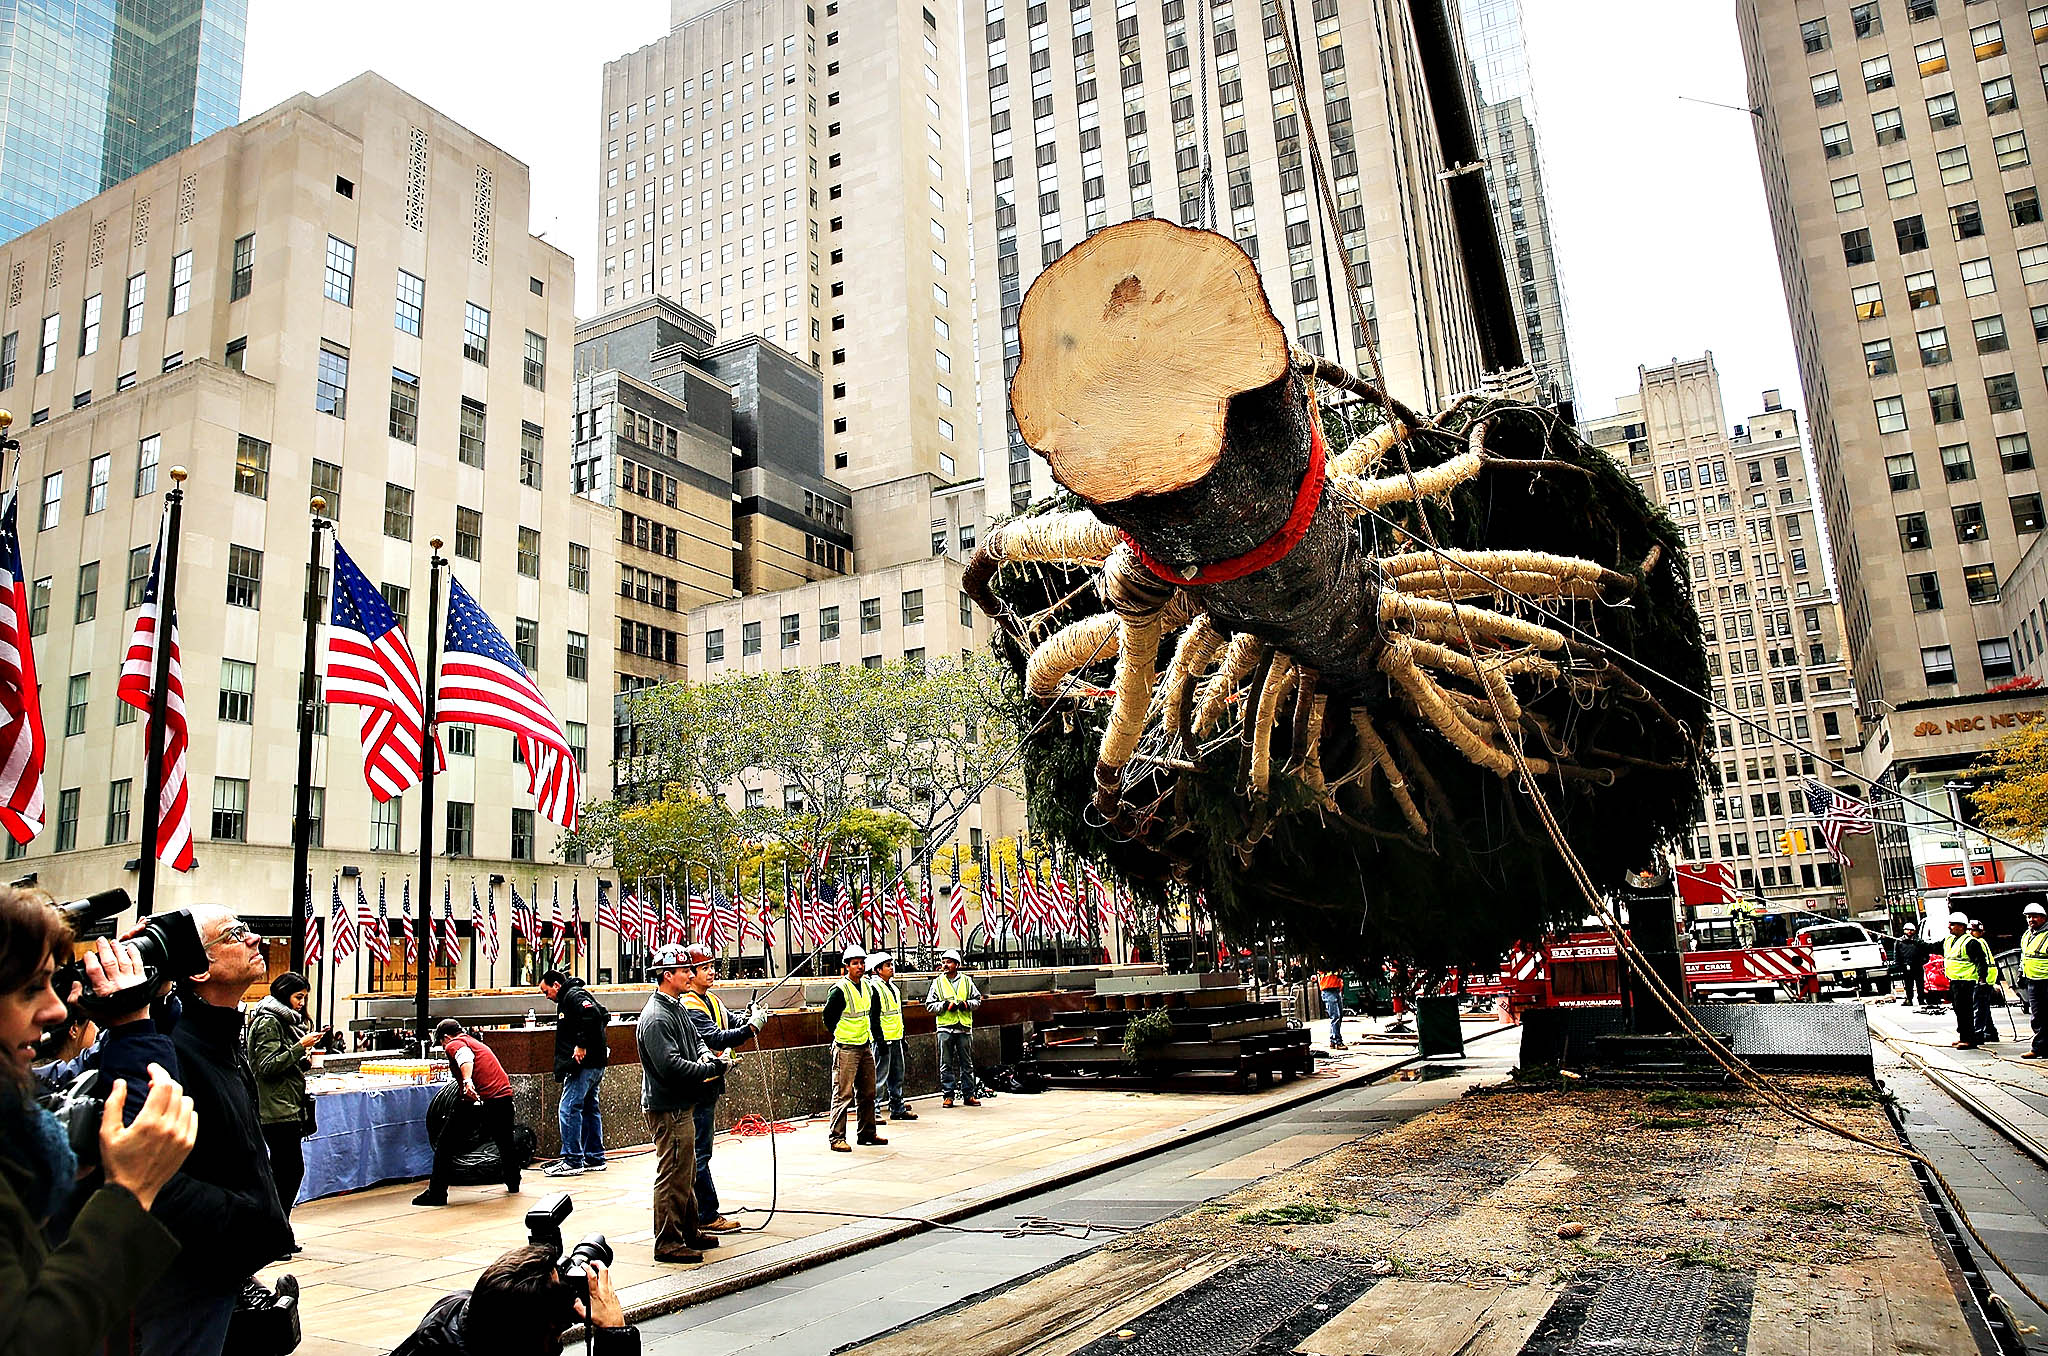 Rockefeller Center's Christmas tree, an 85-foot Norway spruce from central Pennsylvania, is hoisted onto a platform on November 7, 2014 in New York City. The 13-ton tree will be illuminated on December 3 in a ceremony that's been held since 1933. The owners of the land that the tree was cut from intend to donate its wood to build homes for Habitat for Humanity following the Christmas season.